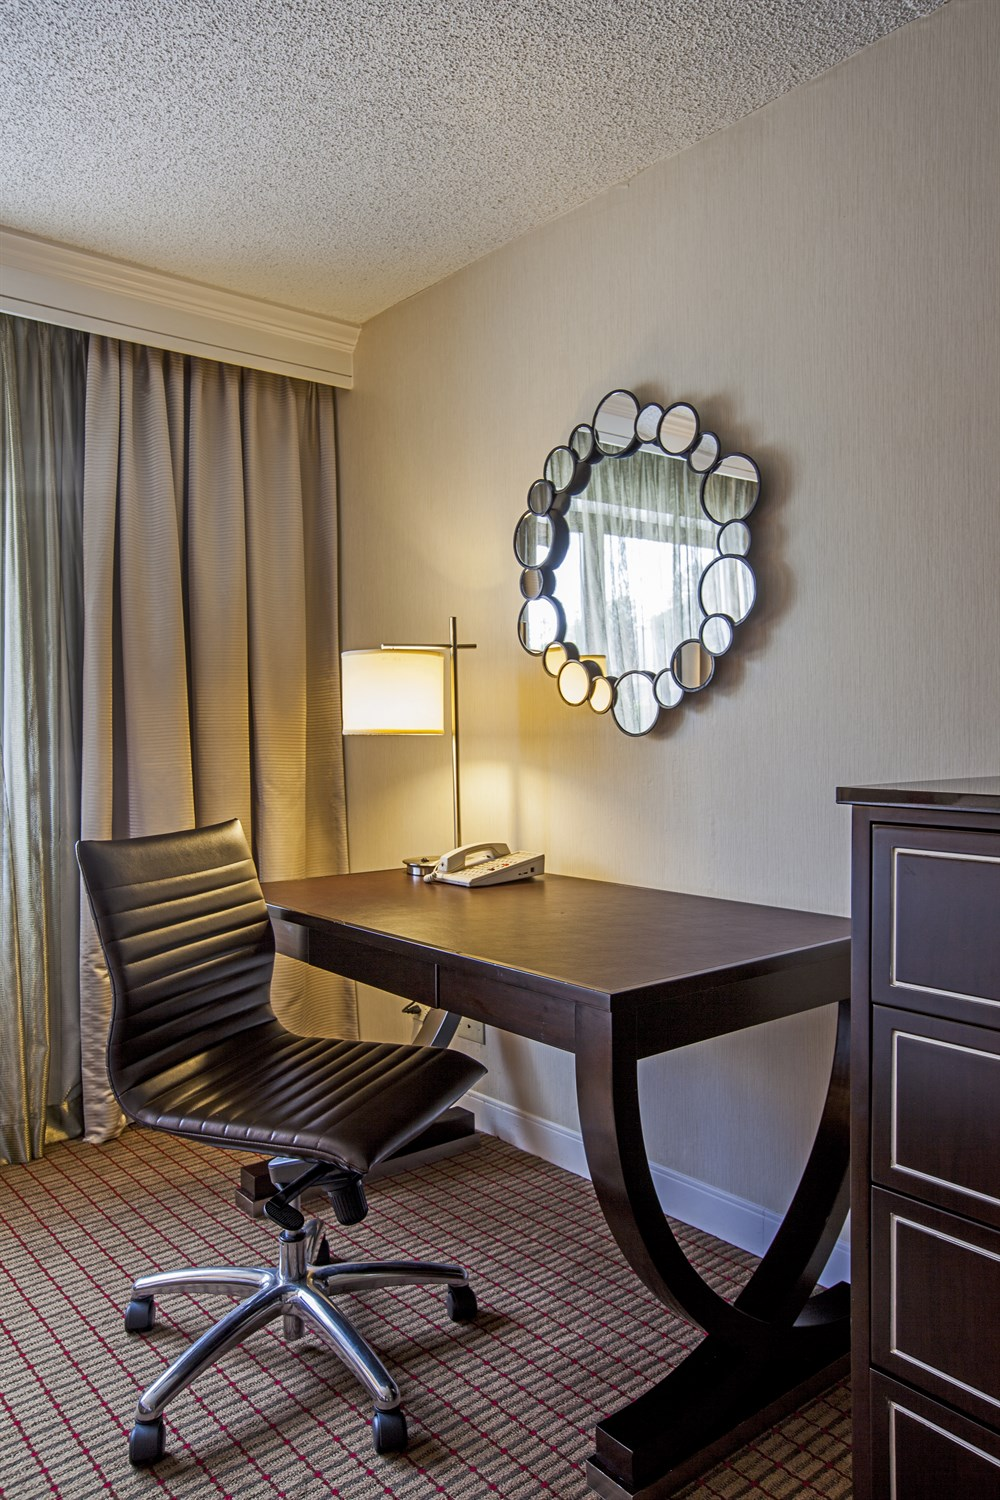 Work space in Laguardia airport hotel